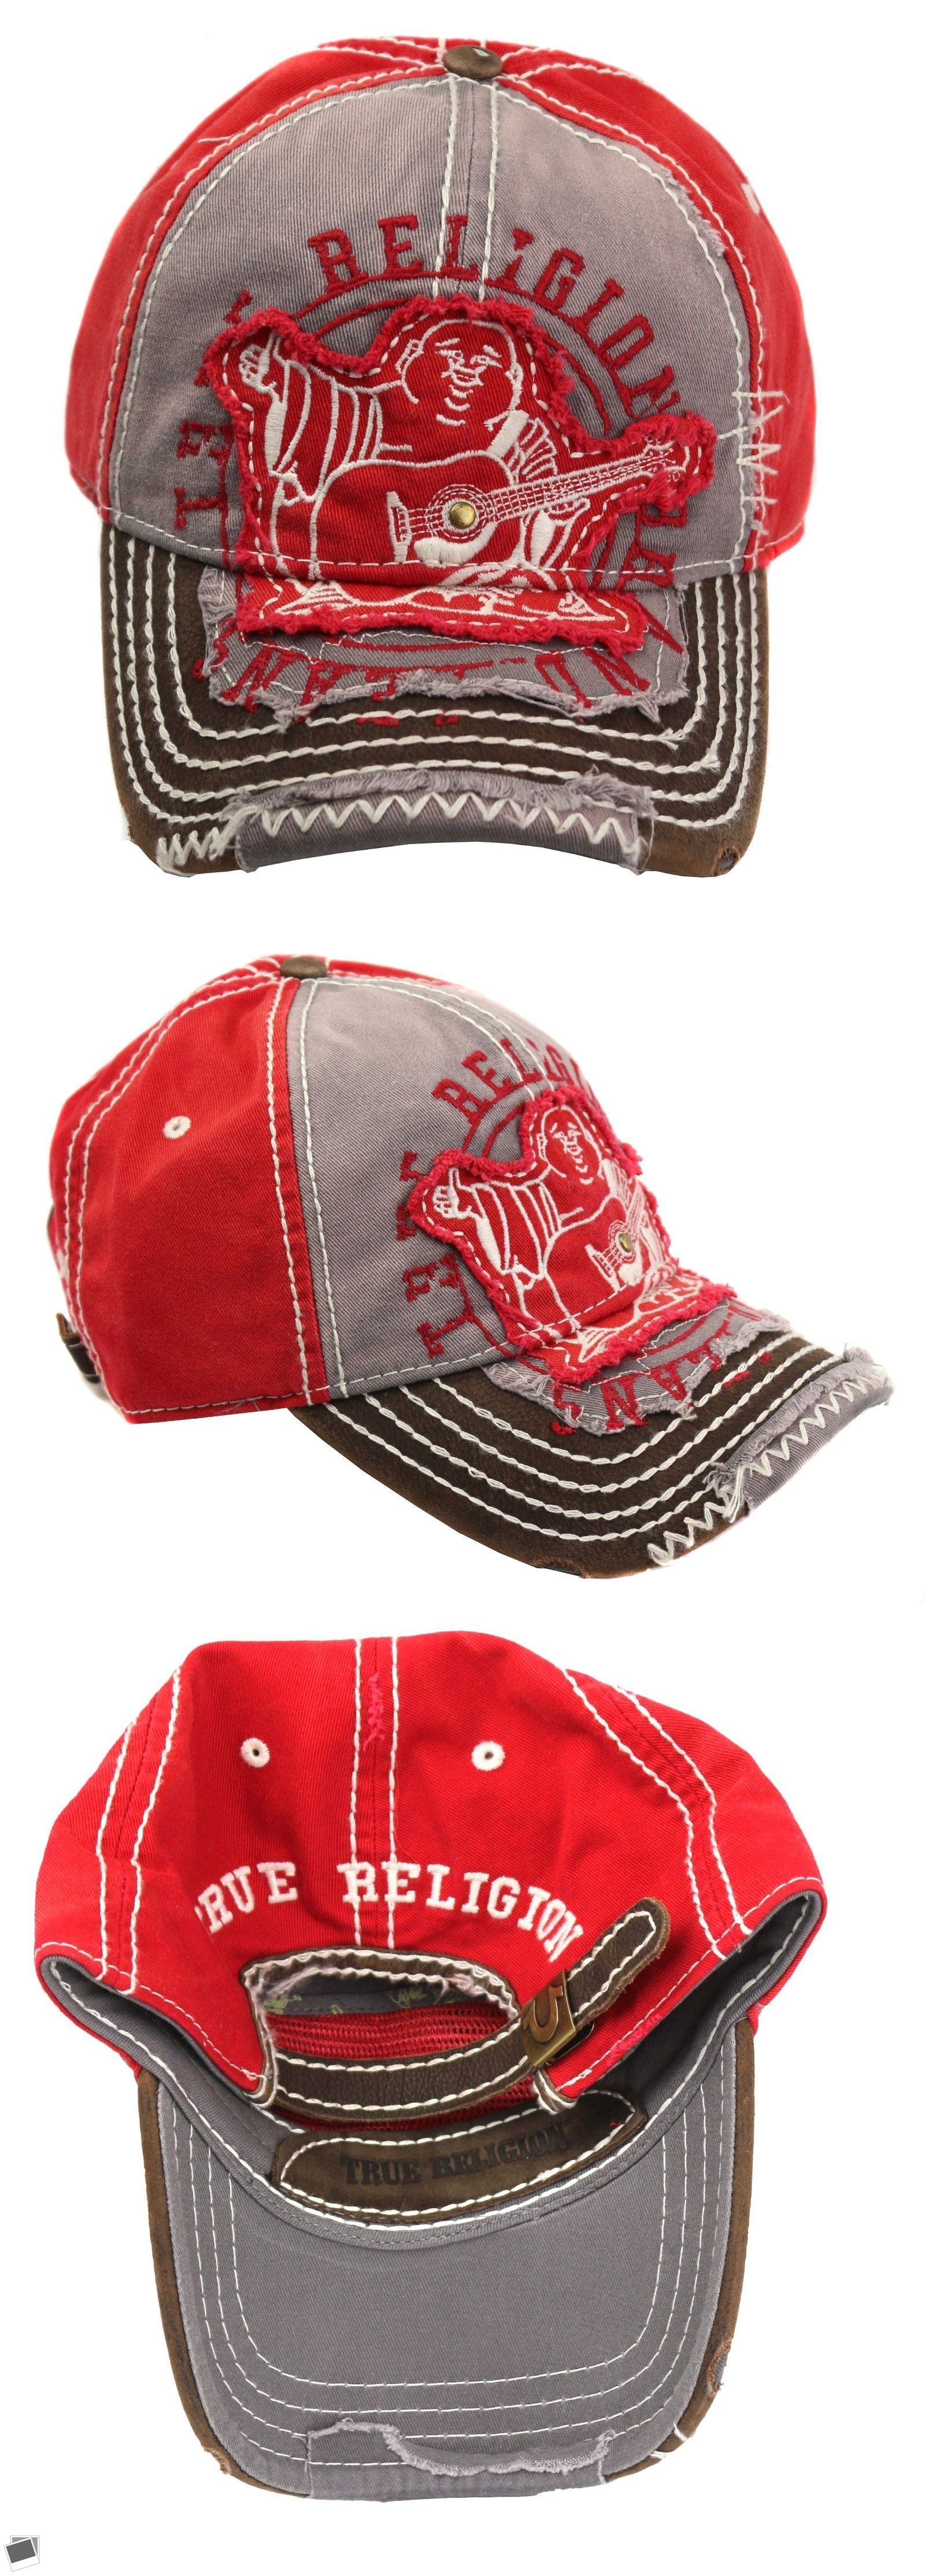 67cbe7c94eb Hats 163543  True Religion Men S Premium Vintage Distressed Buddha Trucker  Hat Cap Tr1101 Red -  BUY IT NOW ONLY   49.99 on eBay!